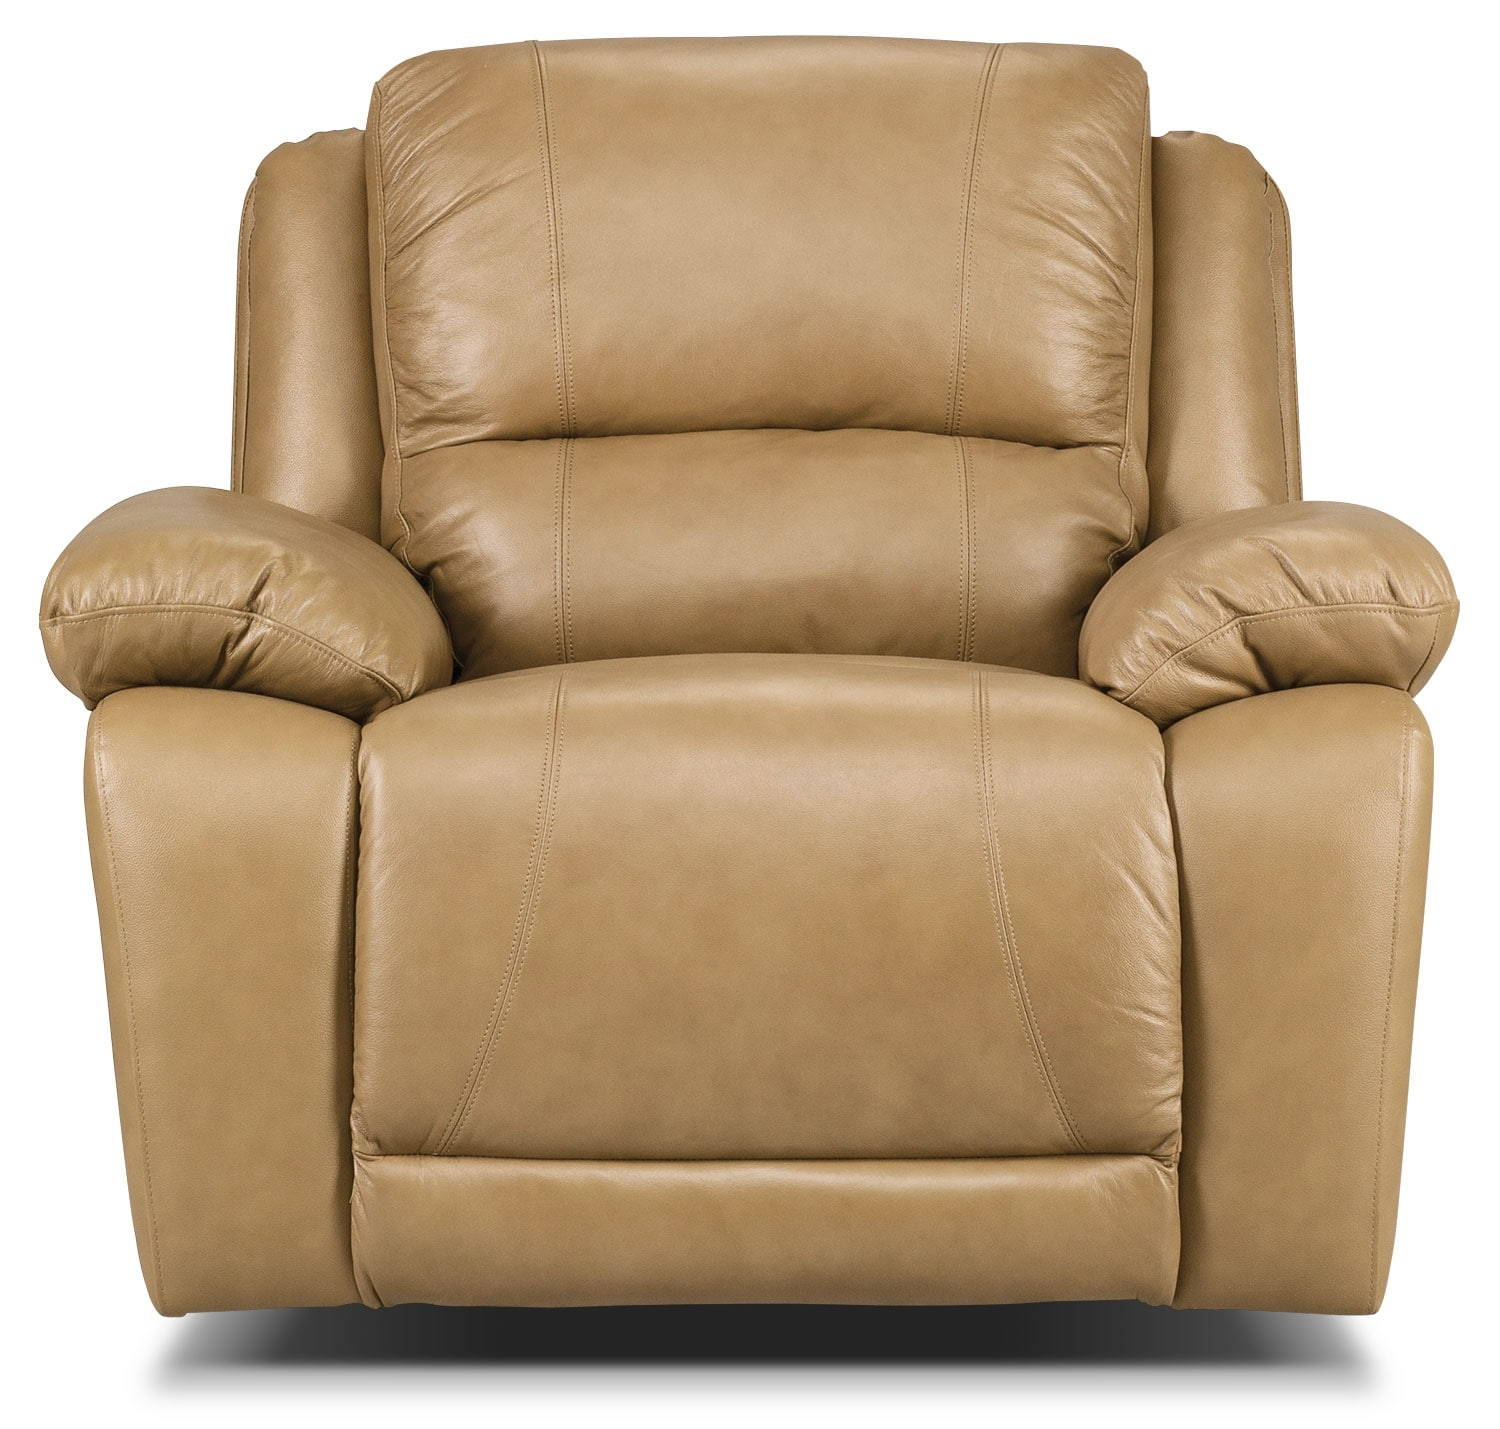 Real Leather Recliner Chairs Marco Genuine Leather Rocker Reclining Chair Toffee